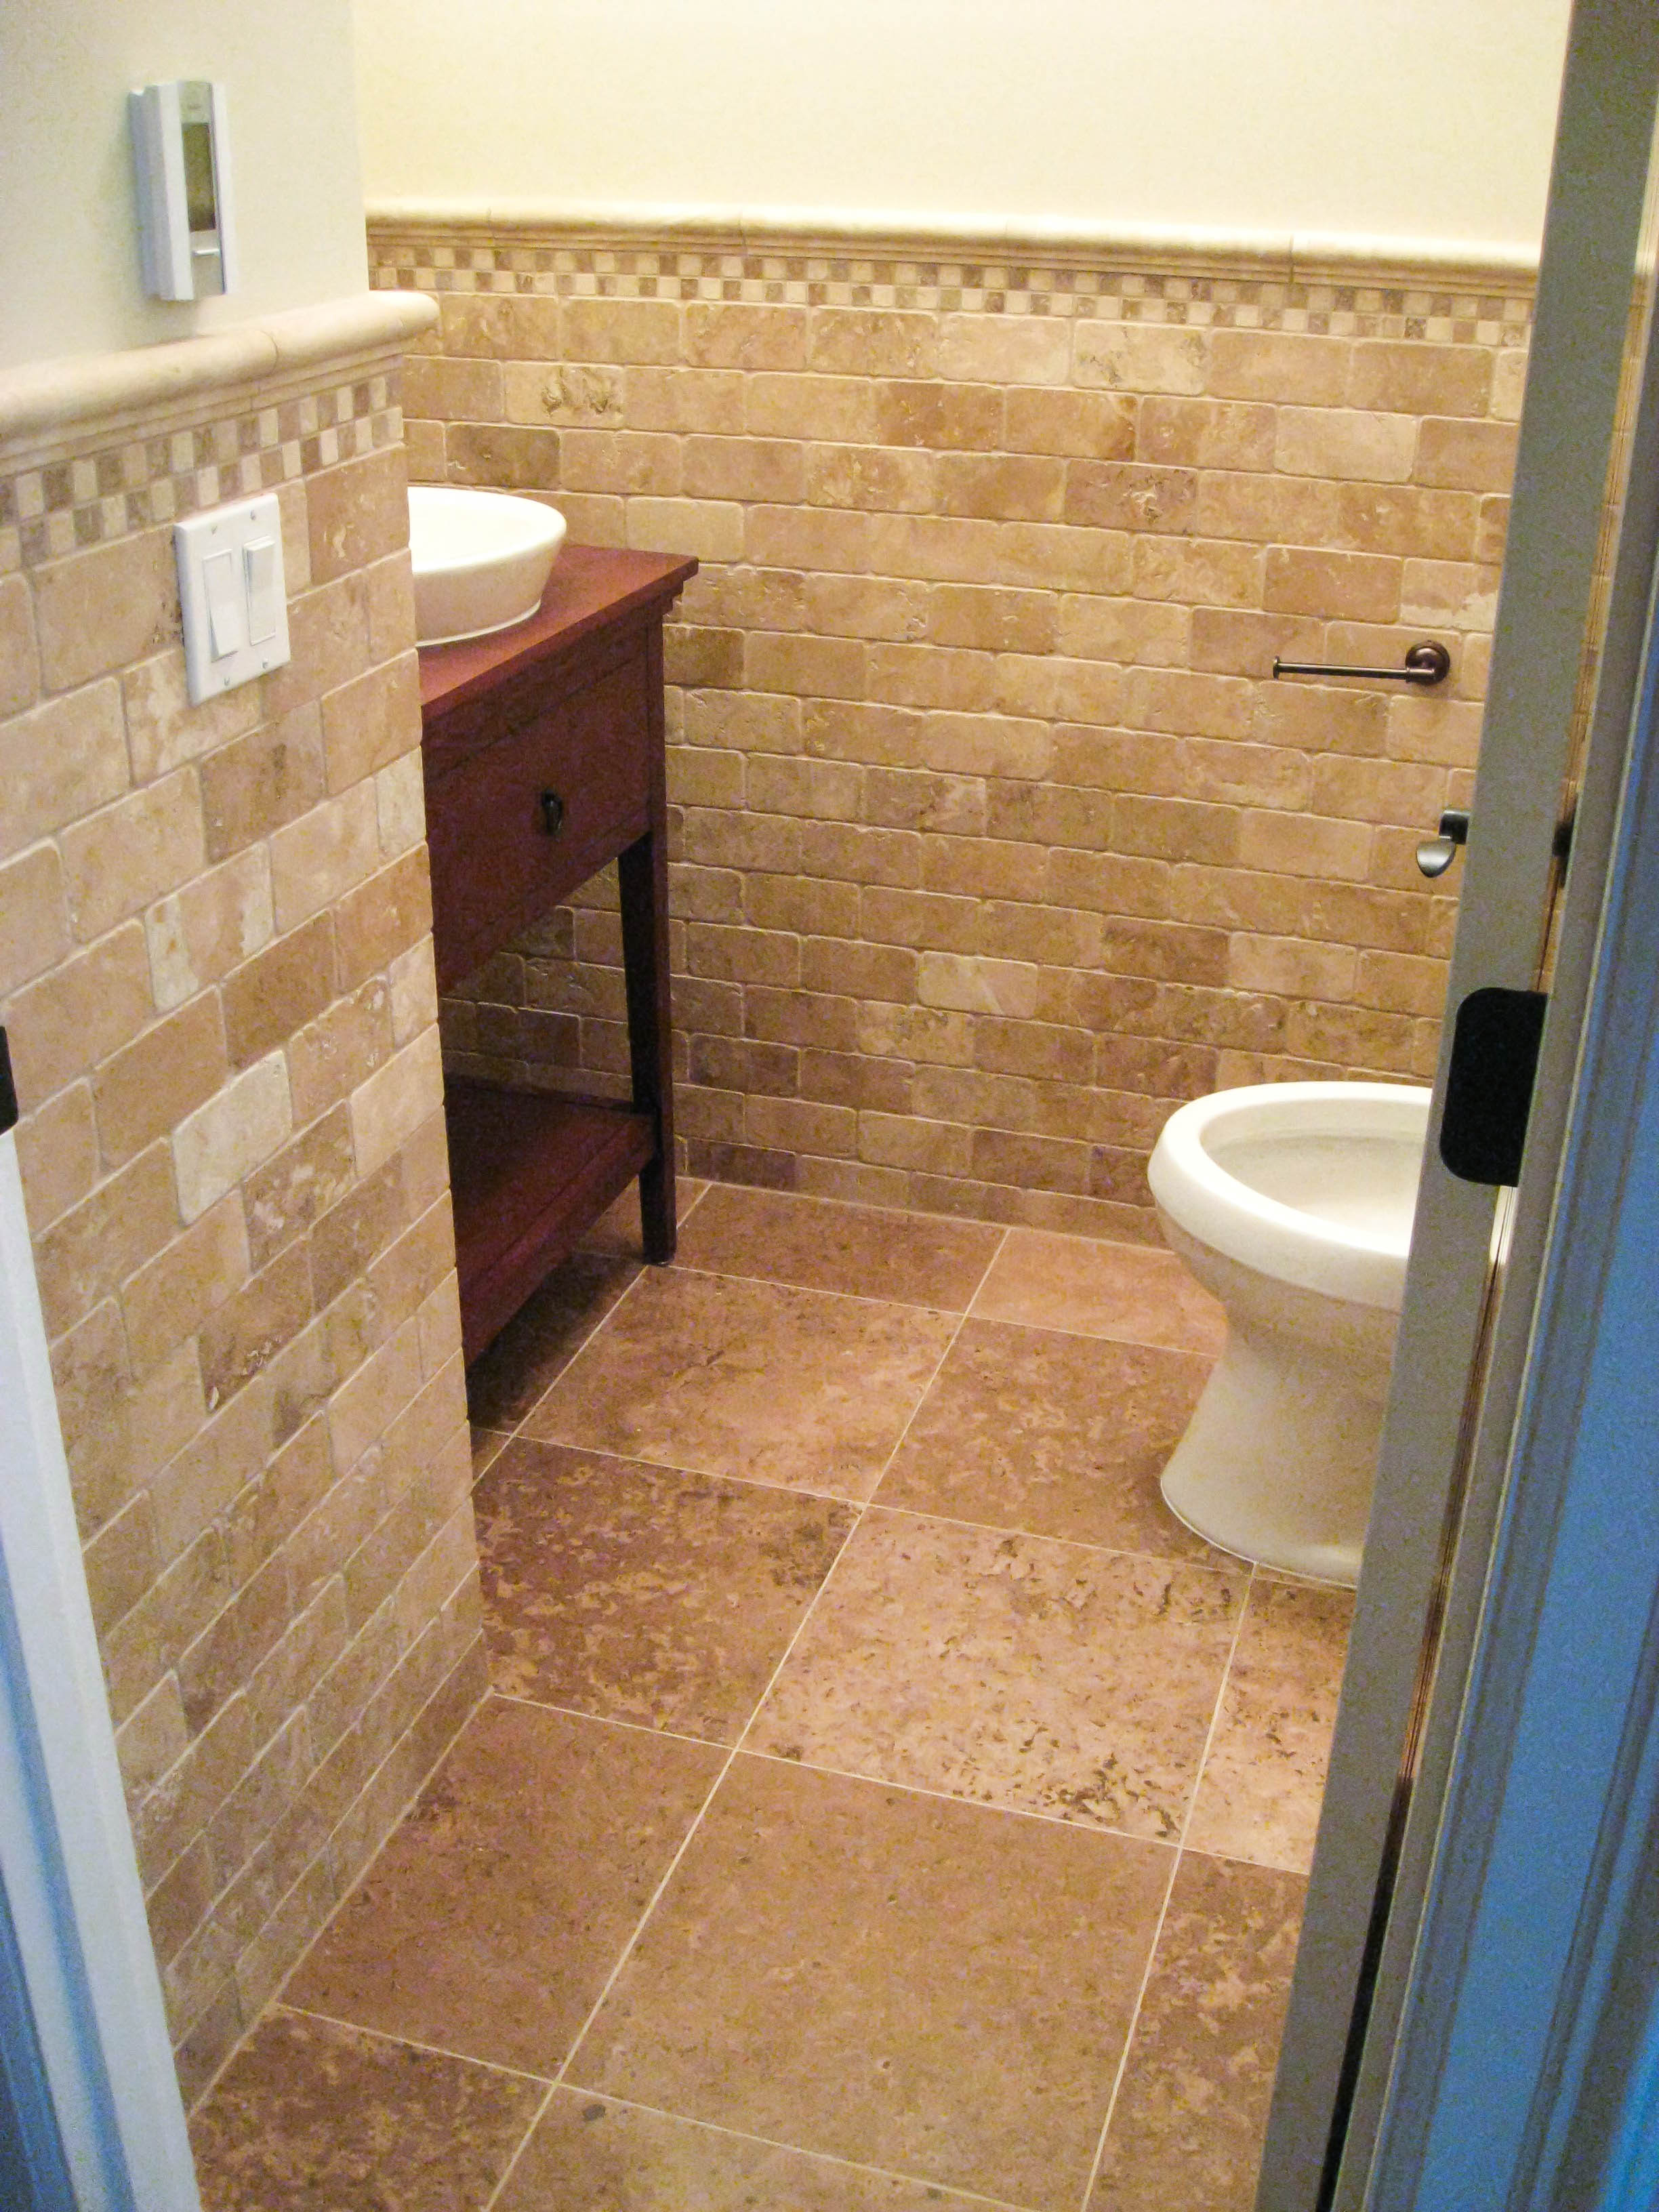 Bathroom wainscoting gallery tile contractor irc tiles services bathroom waincoting 1a dailygadgetfo Images